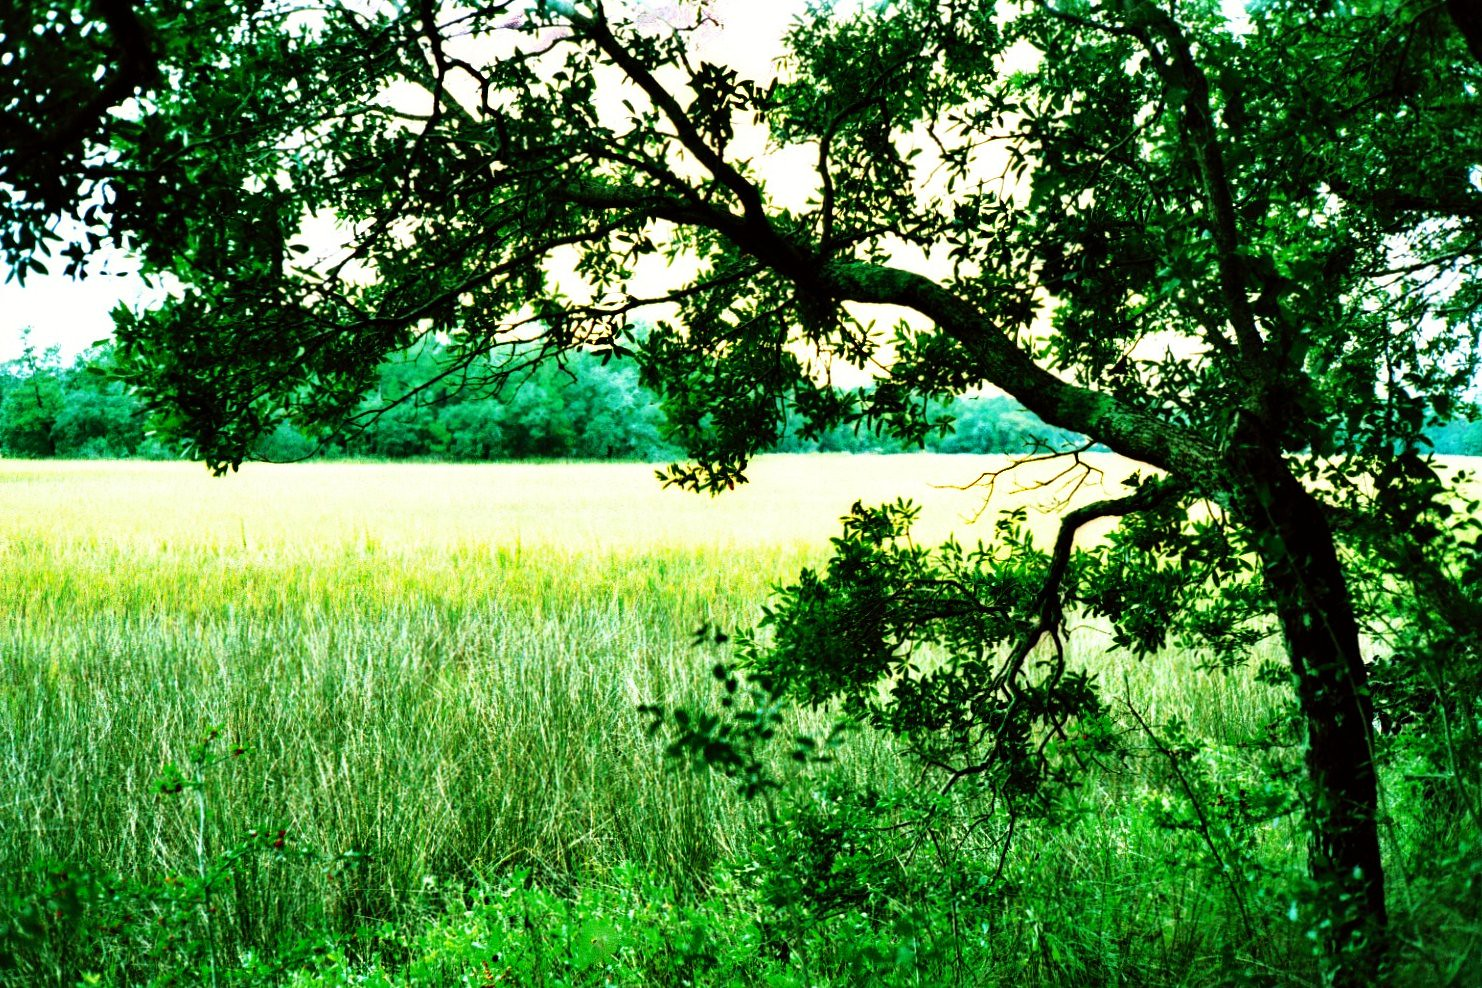 yet another tree with a rice field on Flickr